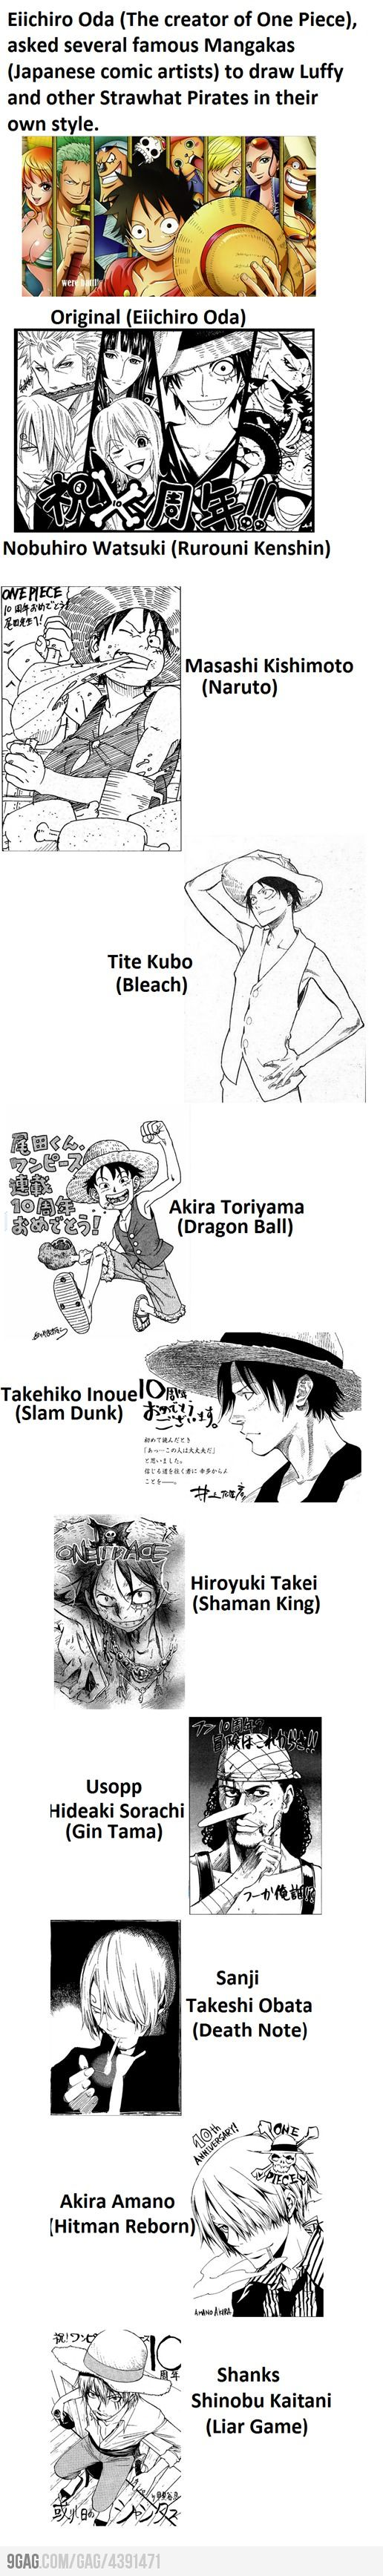 The Creator of One Piece asked several famous Manggakas to draw Luffy and Other Strawhat Pirates in their own style